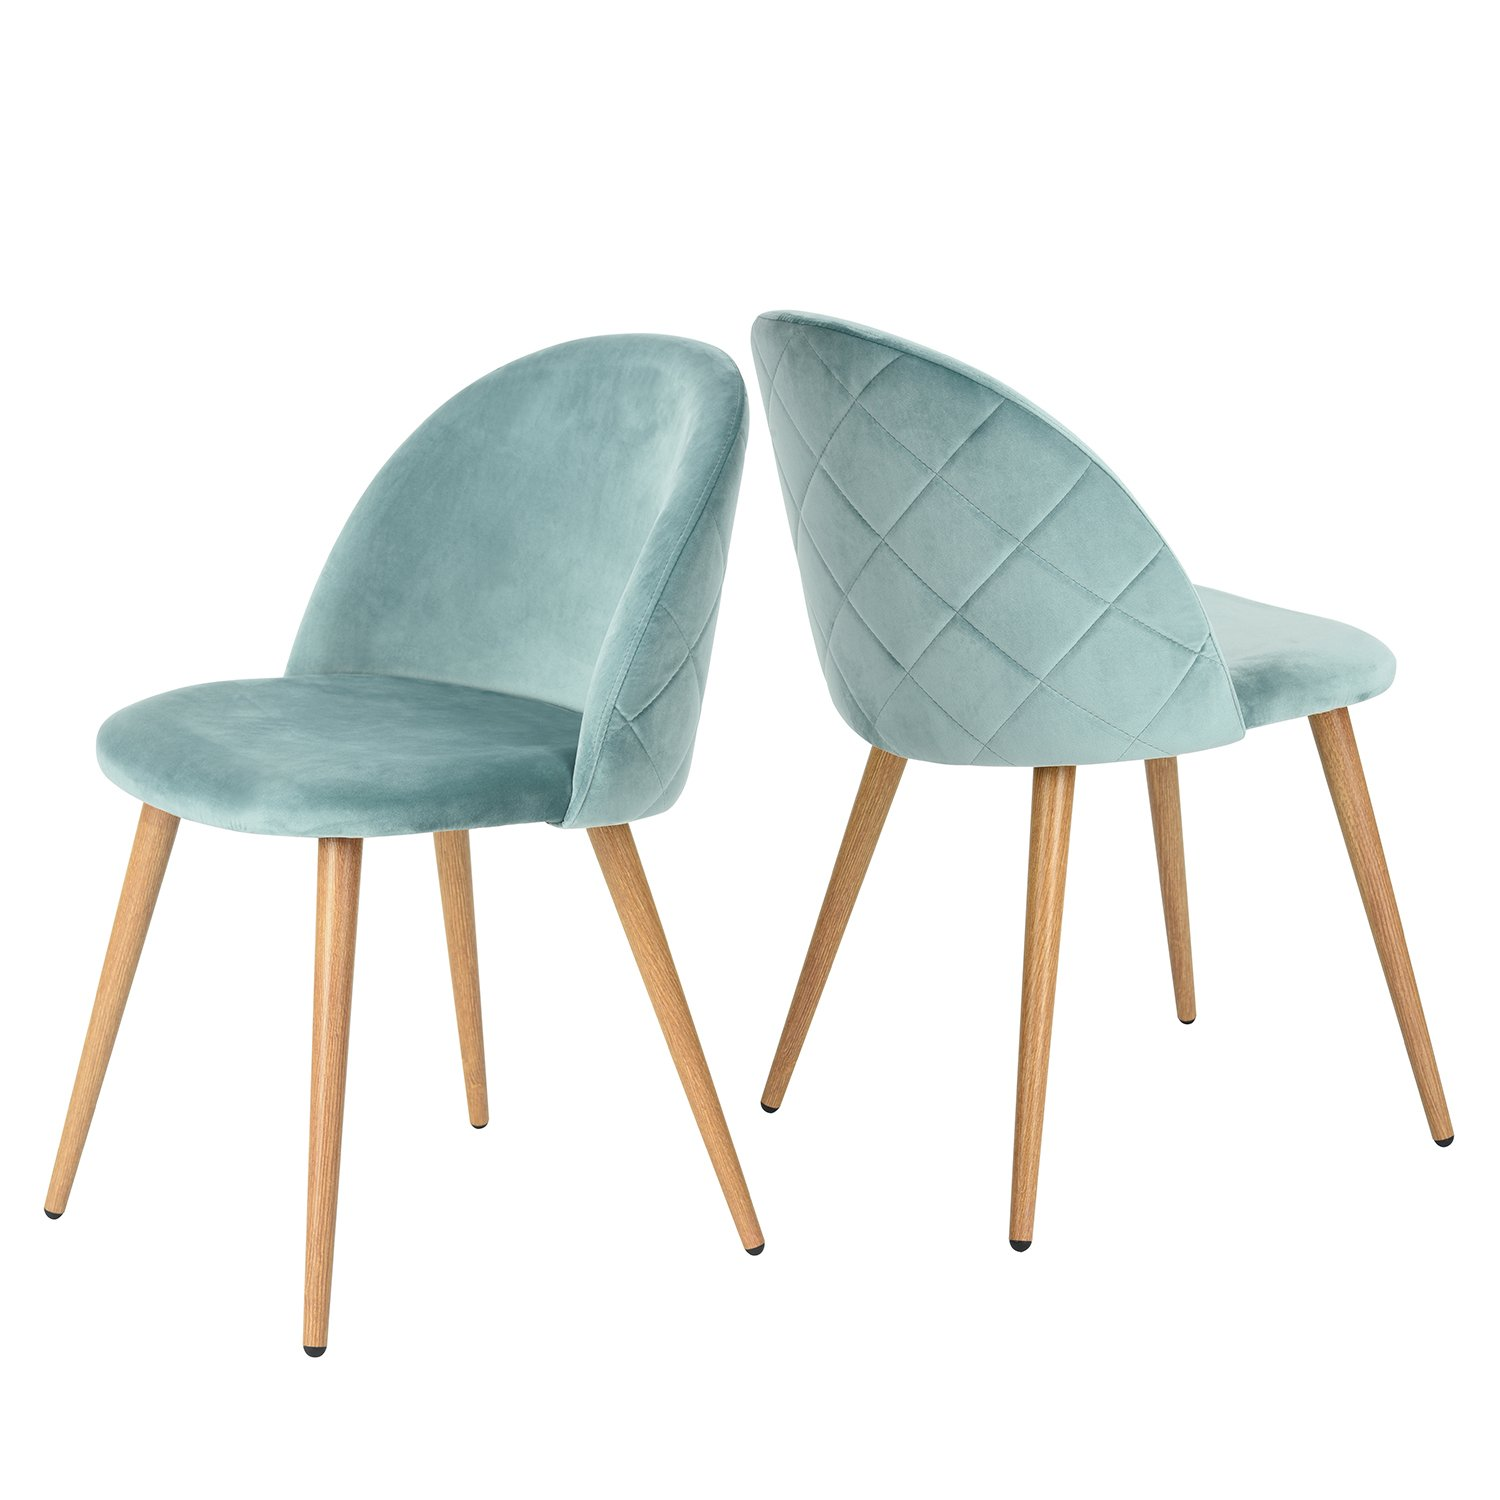 7. GreenForest Living Room Leisure Chairs- set of 2